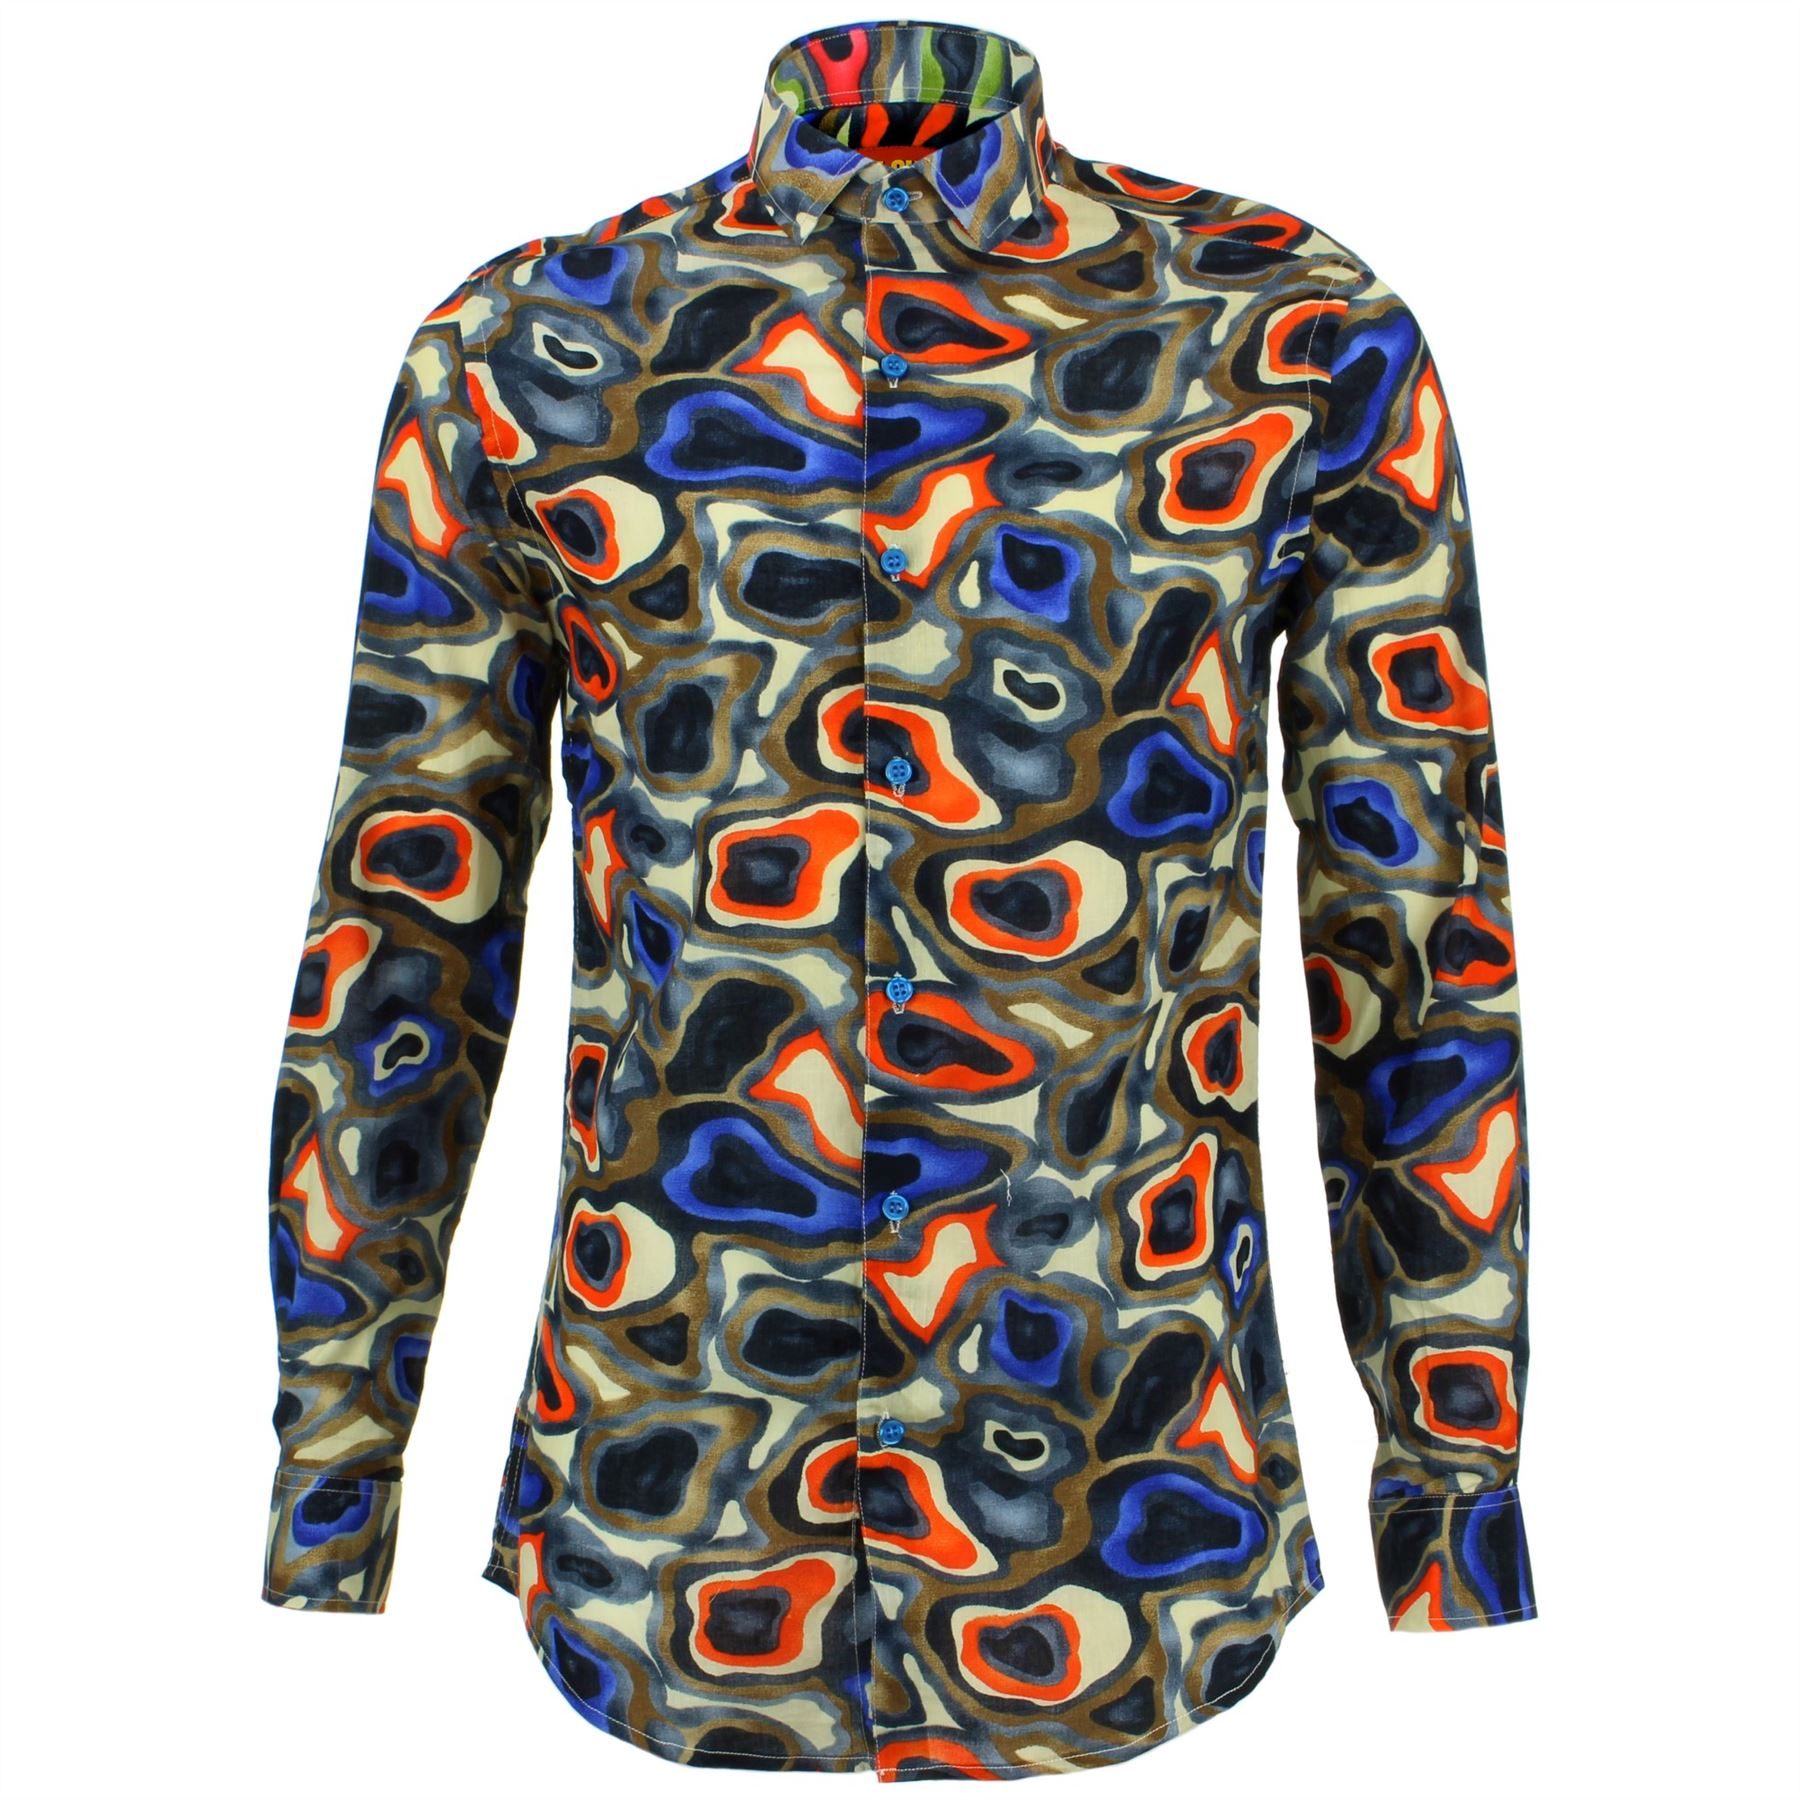 Mens Shirt Loud Originals TAILORED FIT Camouflage Blue Retro Psychedelic Fancy